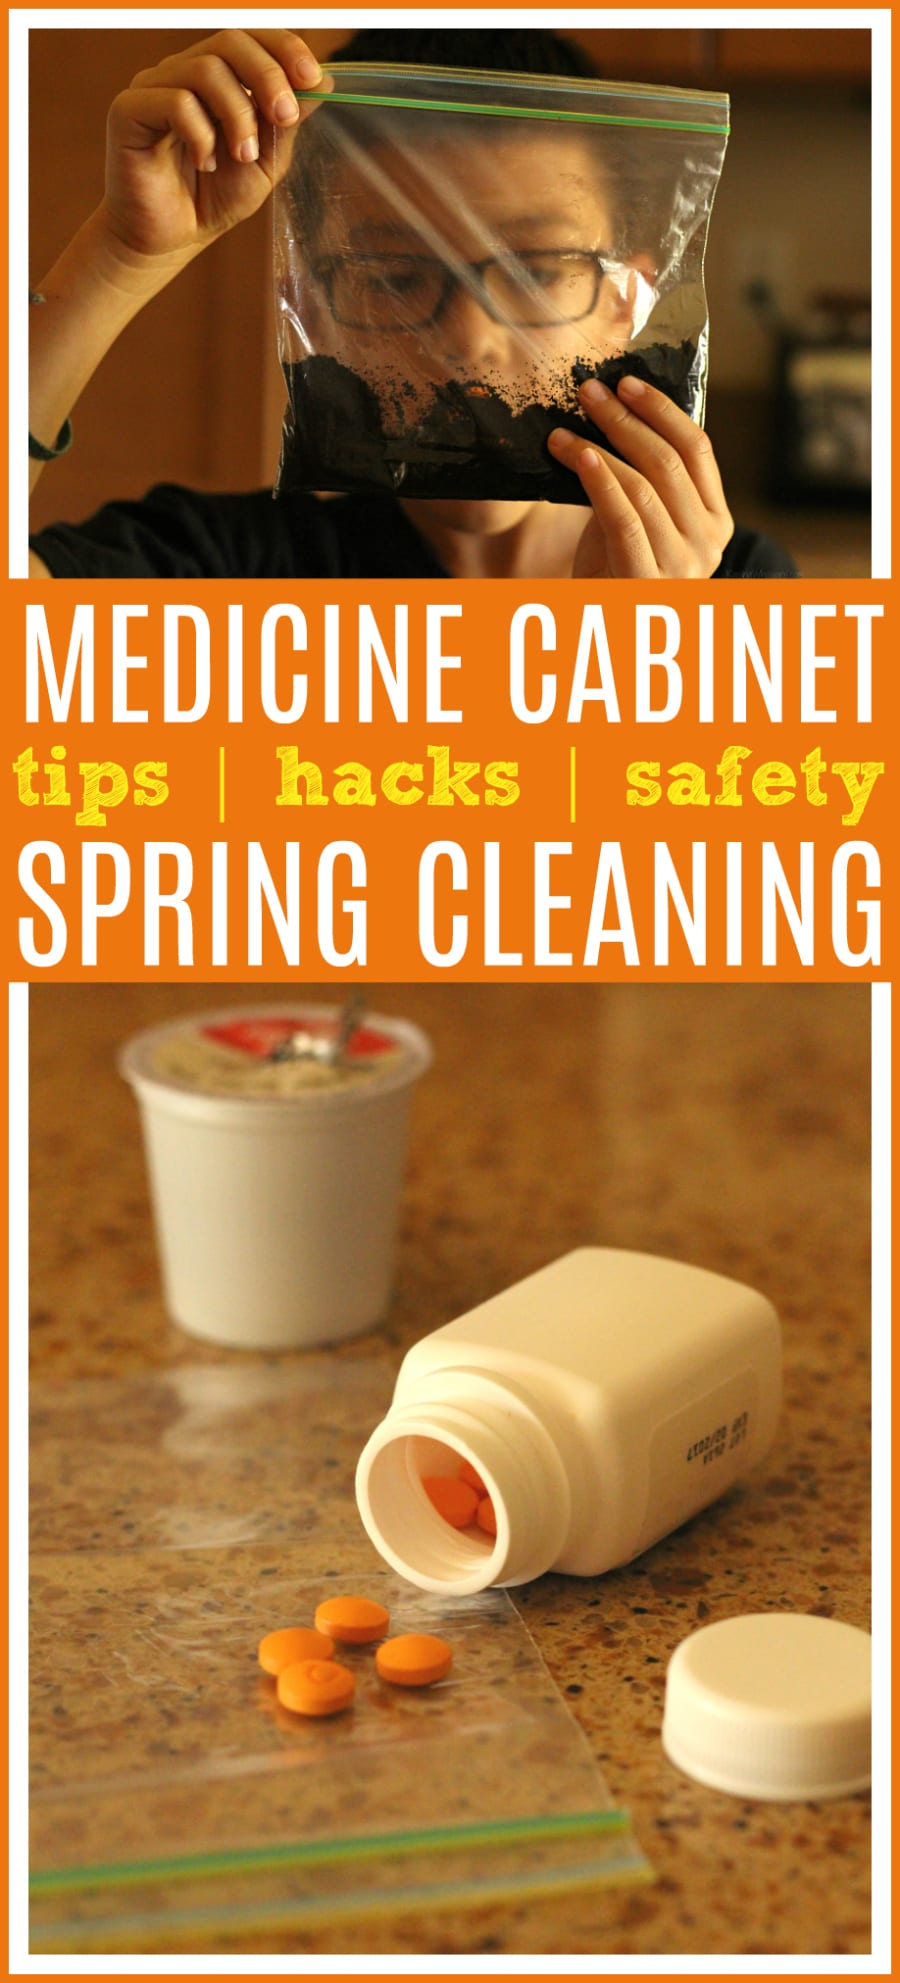 Medicine cabinet spring cleaning